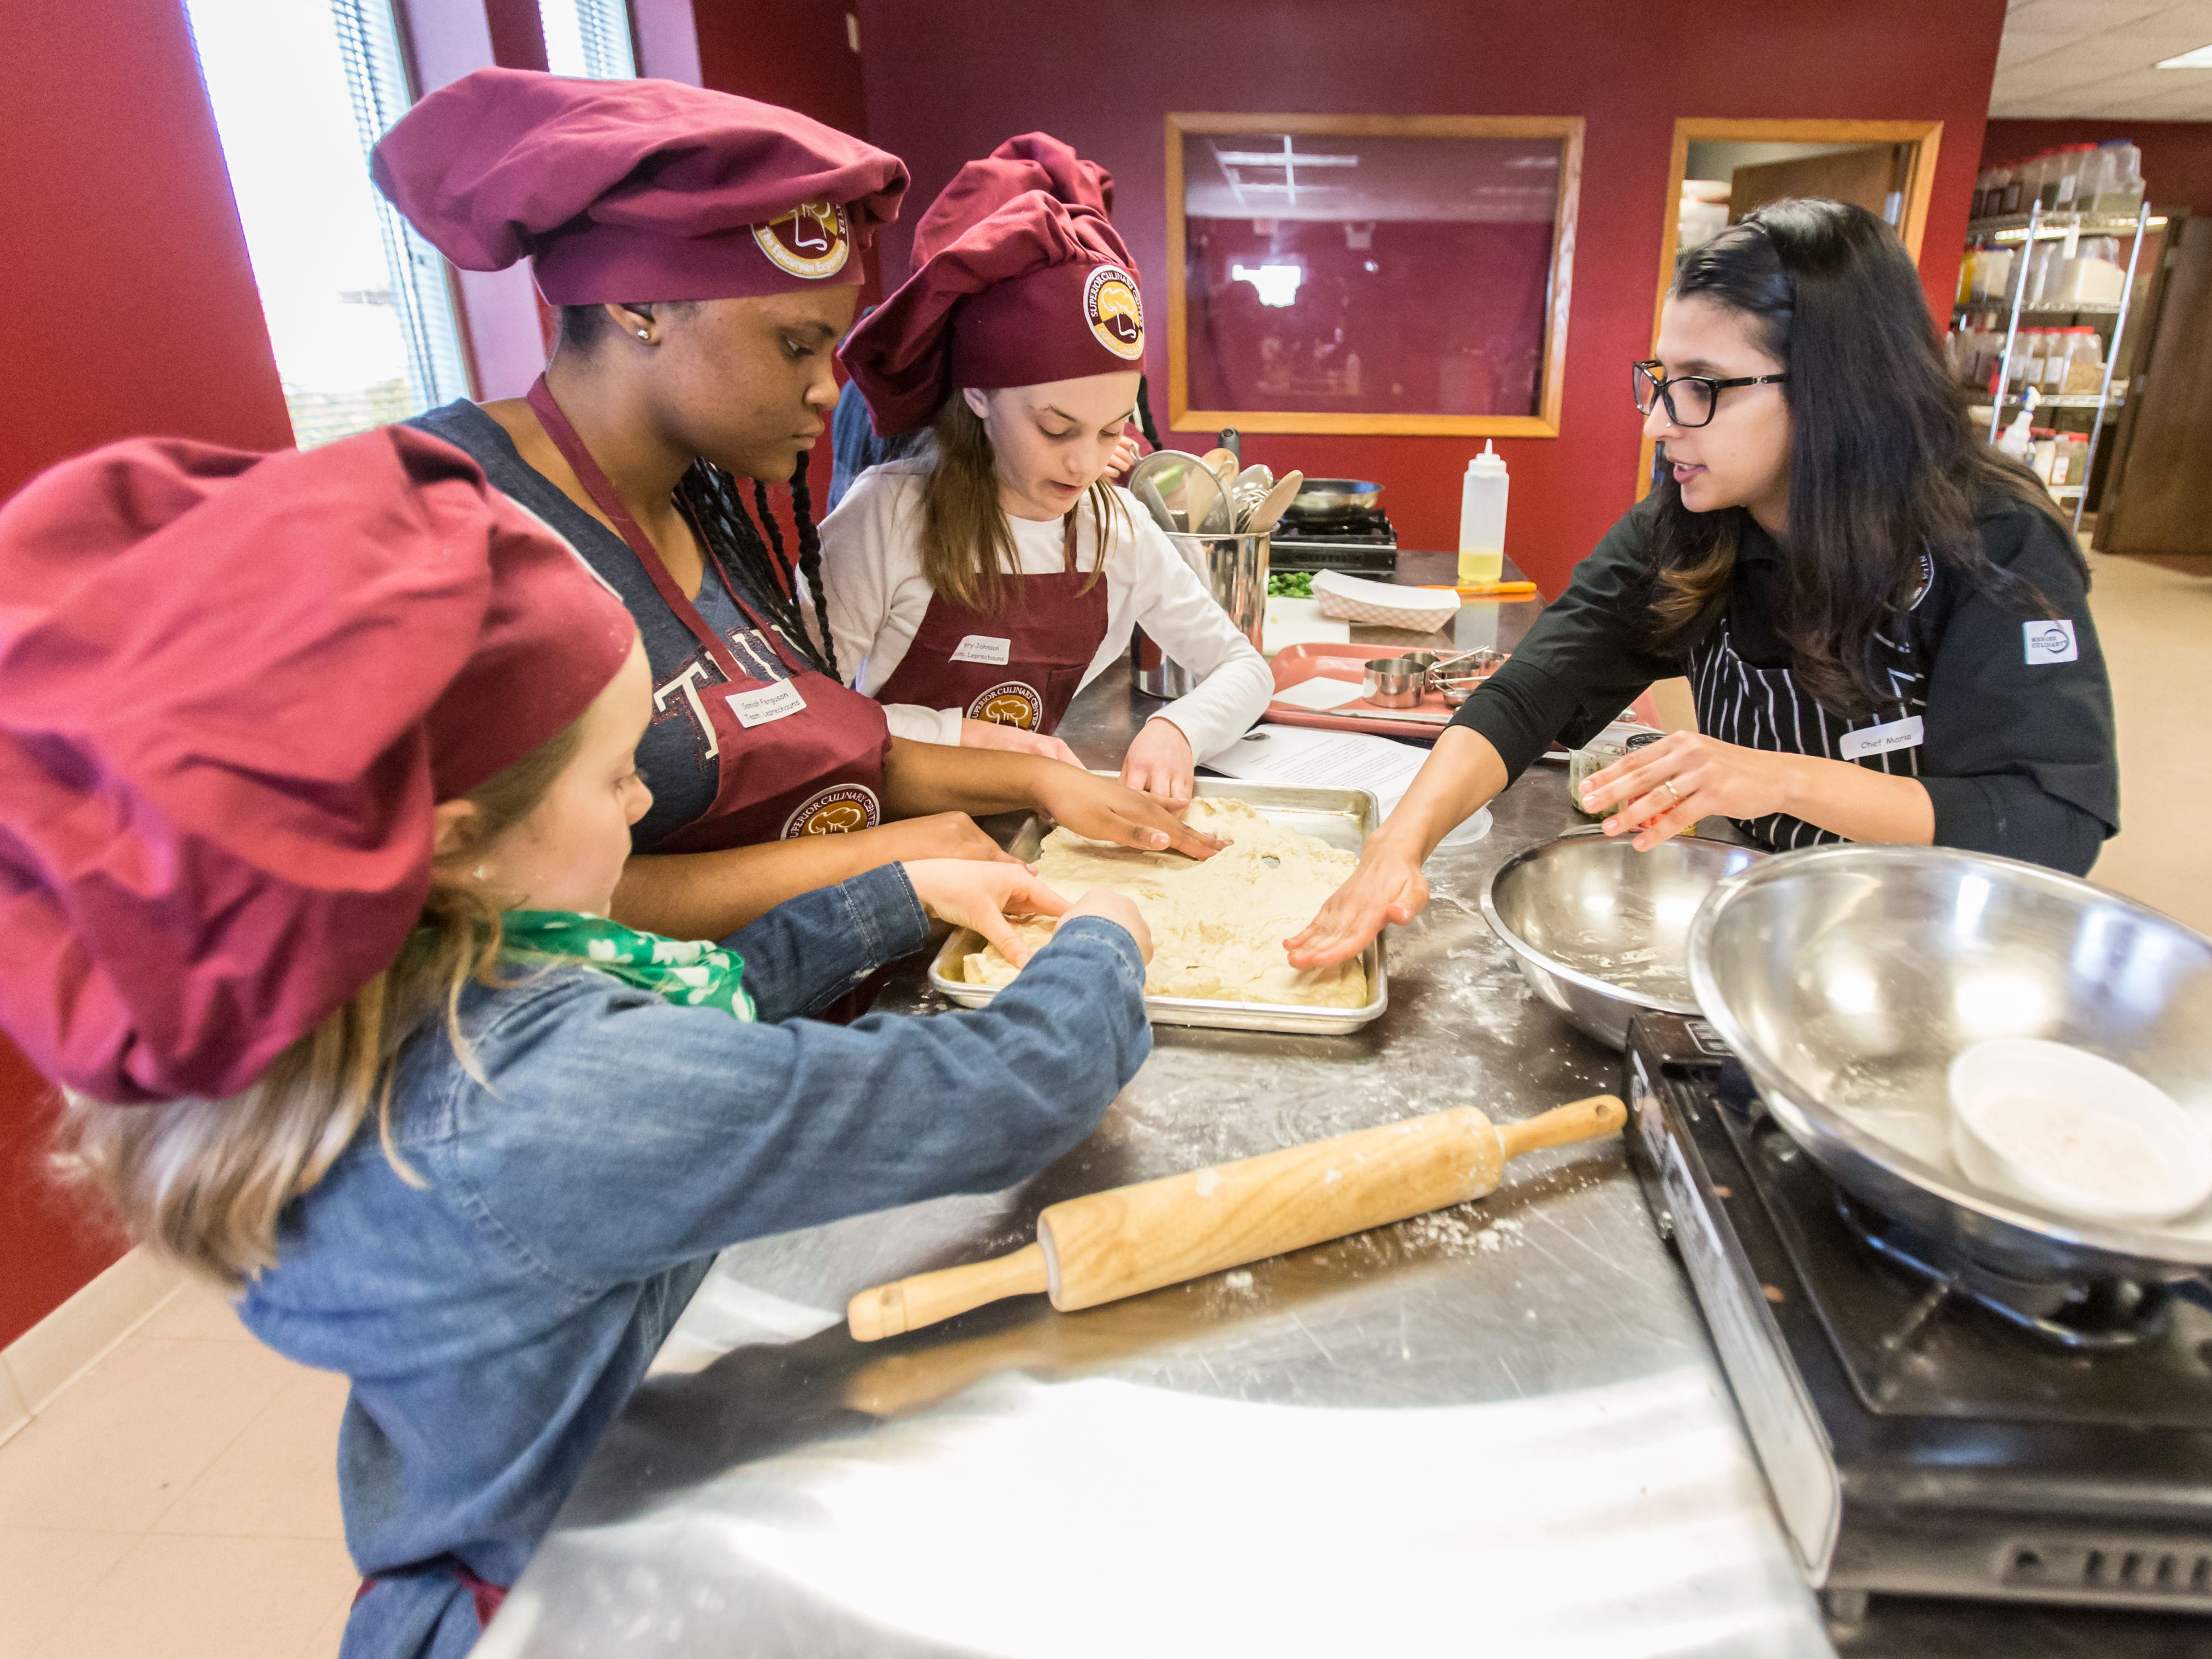 Chef Maria Khan (right) helps (from left) Kendall Johnson, 9, of Port Washington, Saniah Ferguson, 13, of Milwaukee and Avery Johnson, 11, of Port Washington, prepare a homemade green pizza during the St. Patrick's Kids Cooking Class at Superior Culinary Center in Saint Francis on Saturday, March 16, 2019. During the class youngsters learned how to prepare green pizza, Irish brown soda bread, guacamole and chips, mint chocolate chip cake and a vanilla mint milkshake.